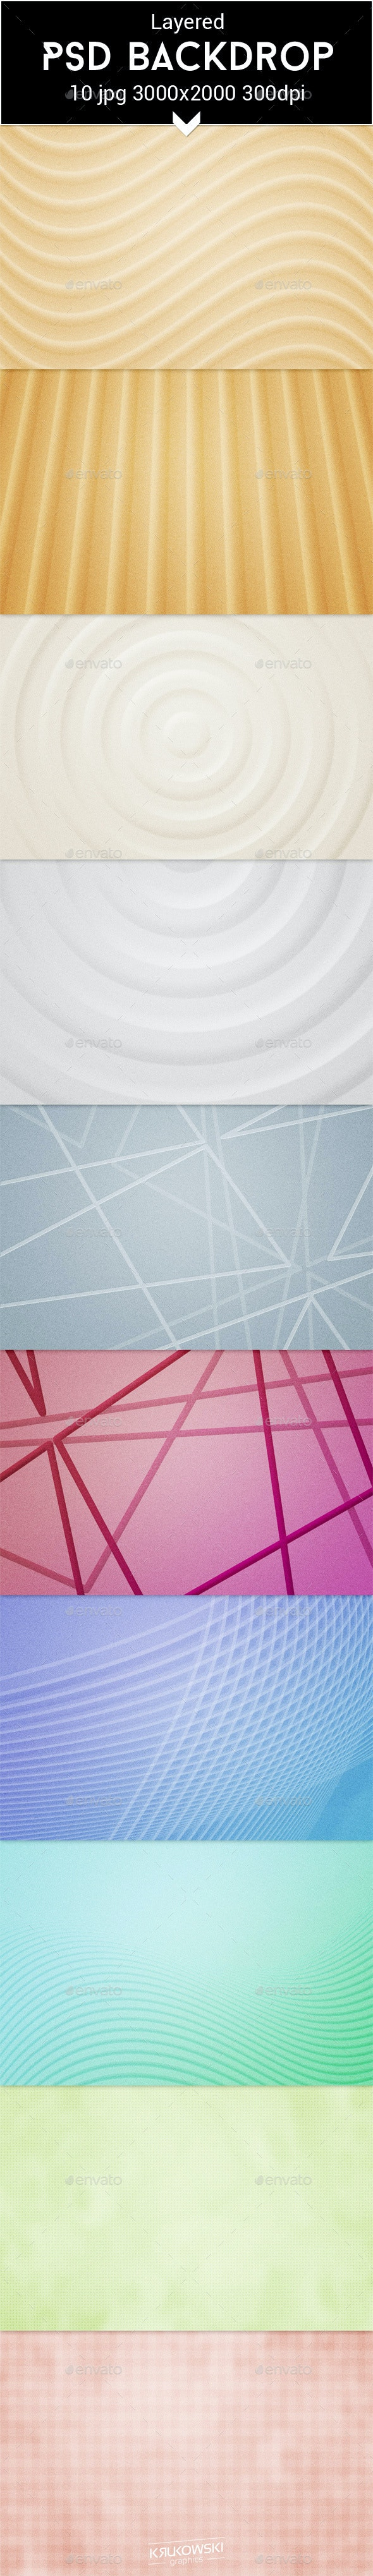 Harmony PSD Backdrop - Abstract Backgrounds